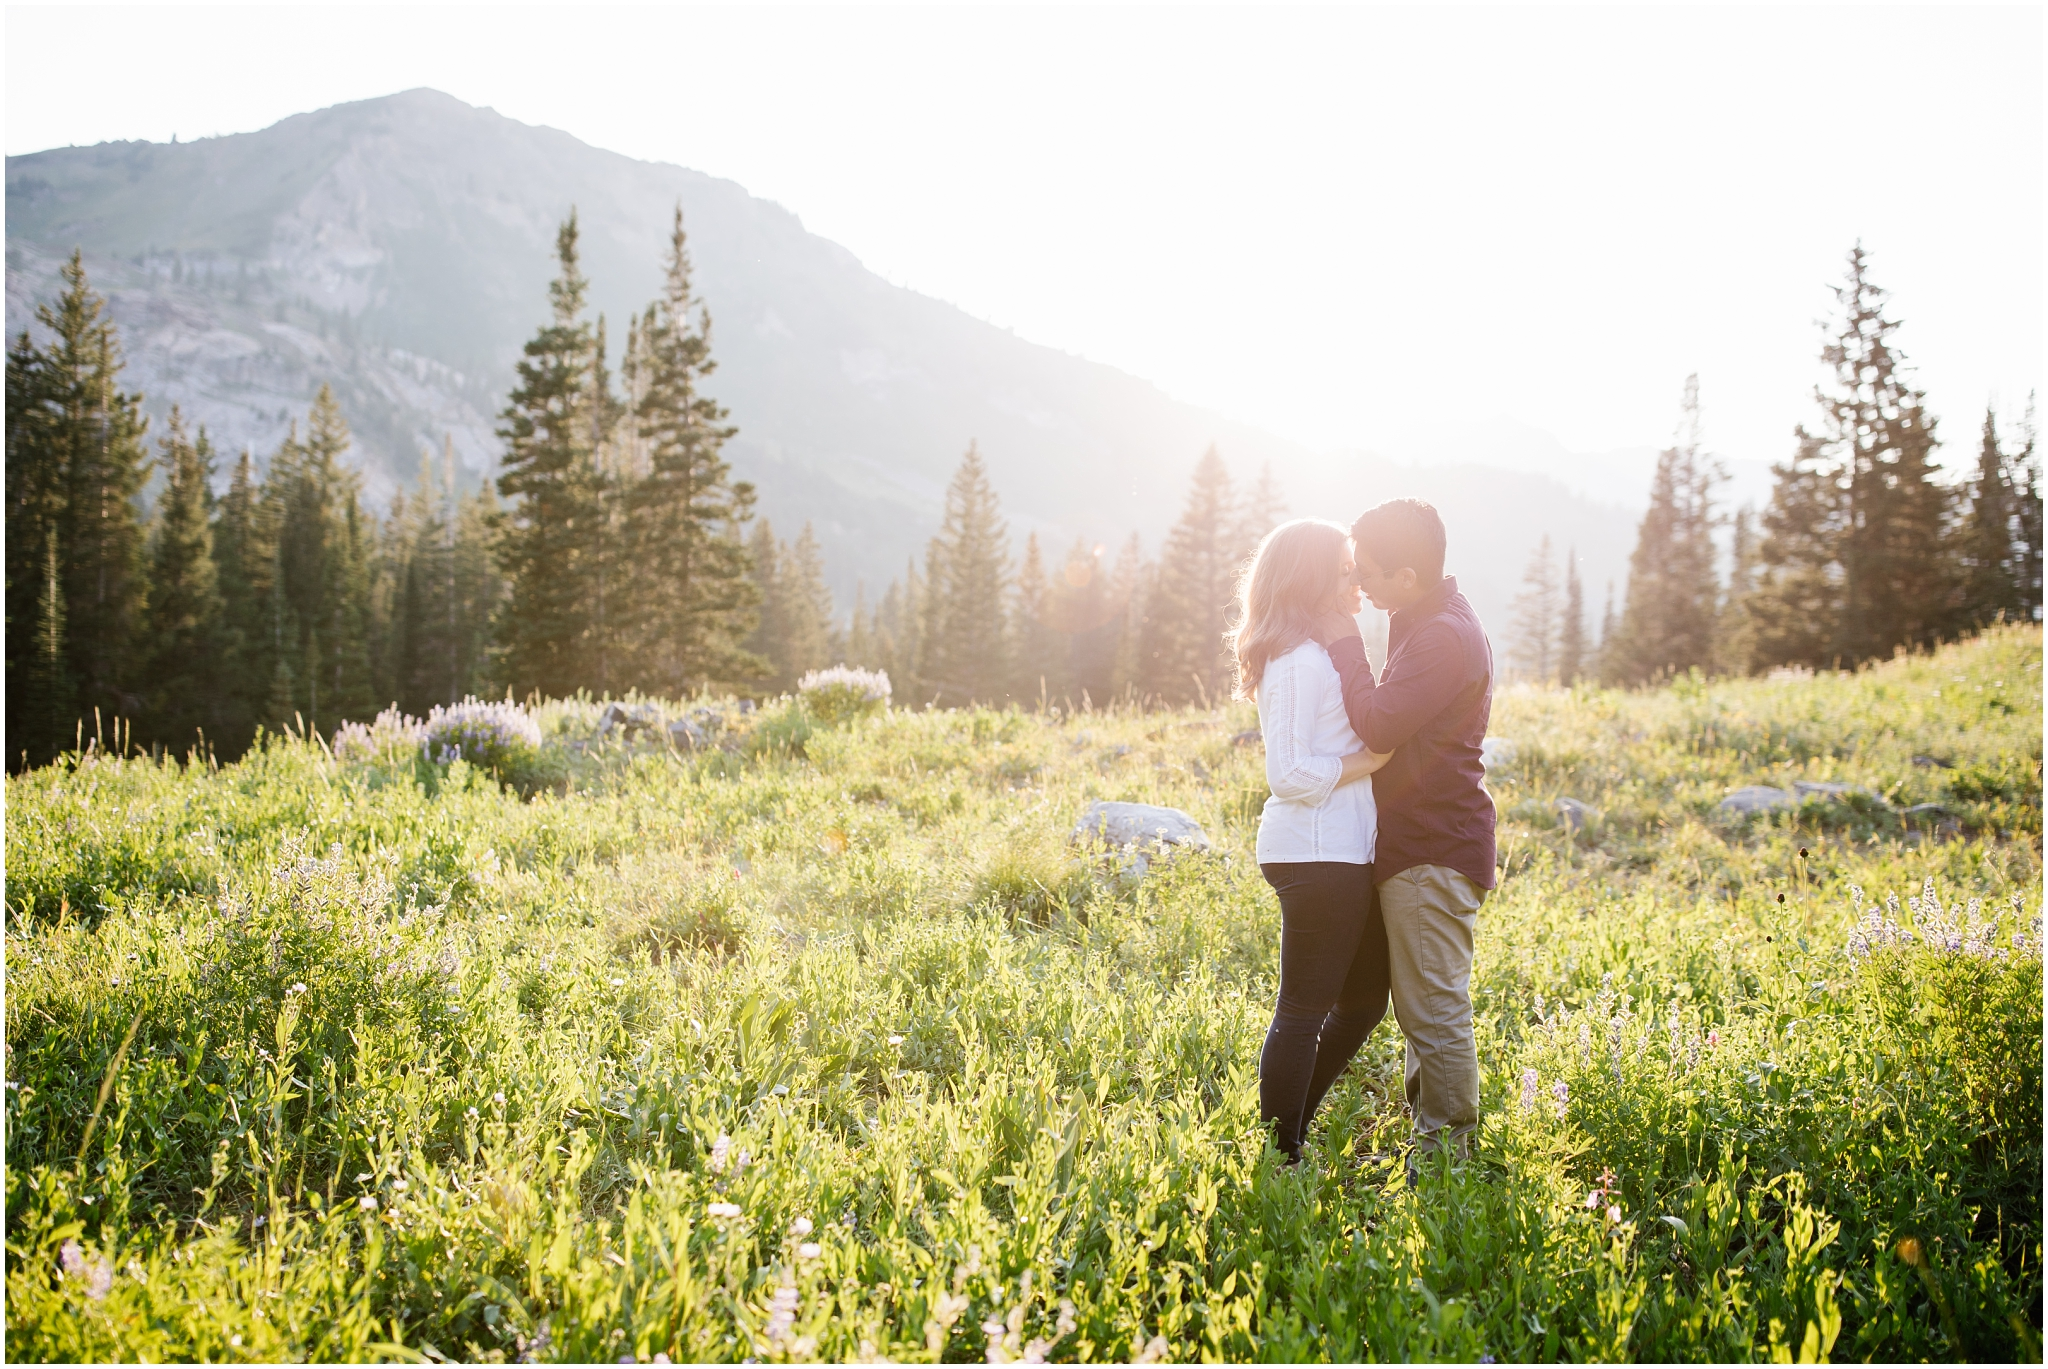 Harold and Emma-73_Lizzie-B-Imagery-Utah-Wedding-Photographer-Central-Utah-Park-City-Salt-Lake-City-Albion-Basin-Engagement-Session.jpg